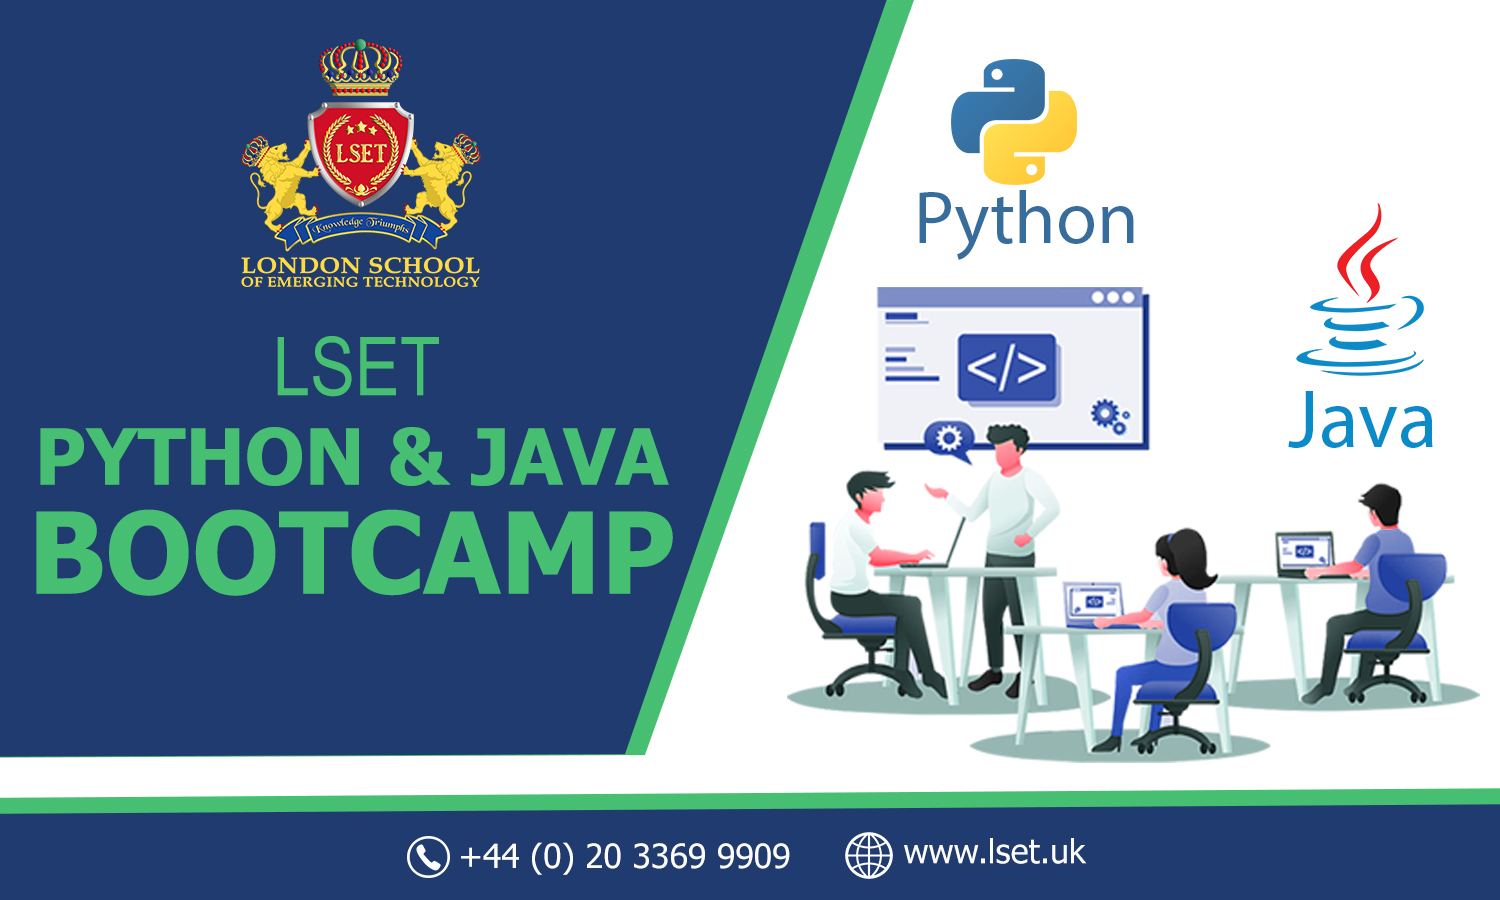 LSET is Coming up with Java and Python Bootcamps 19